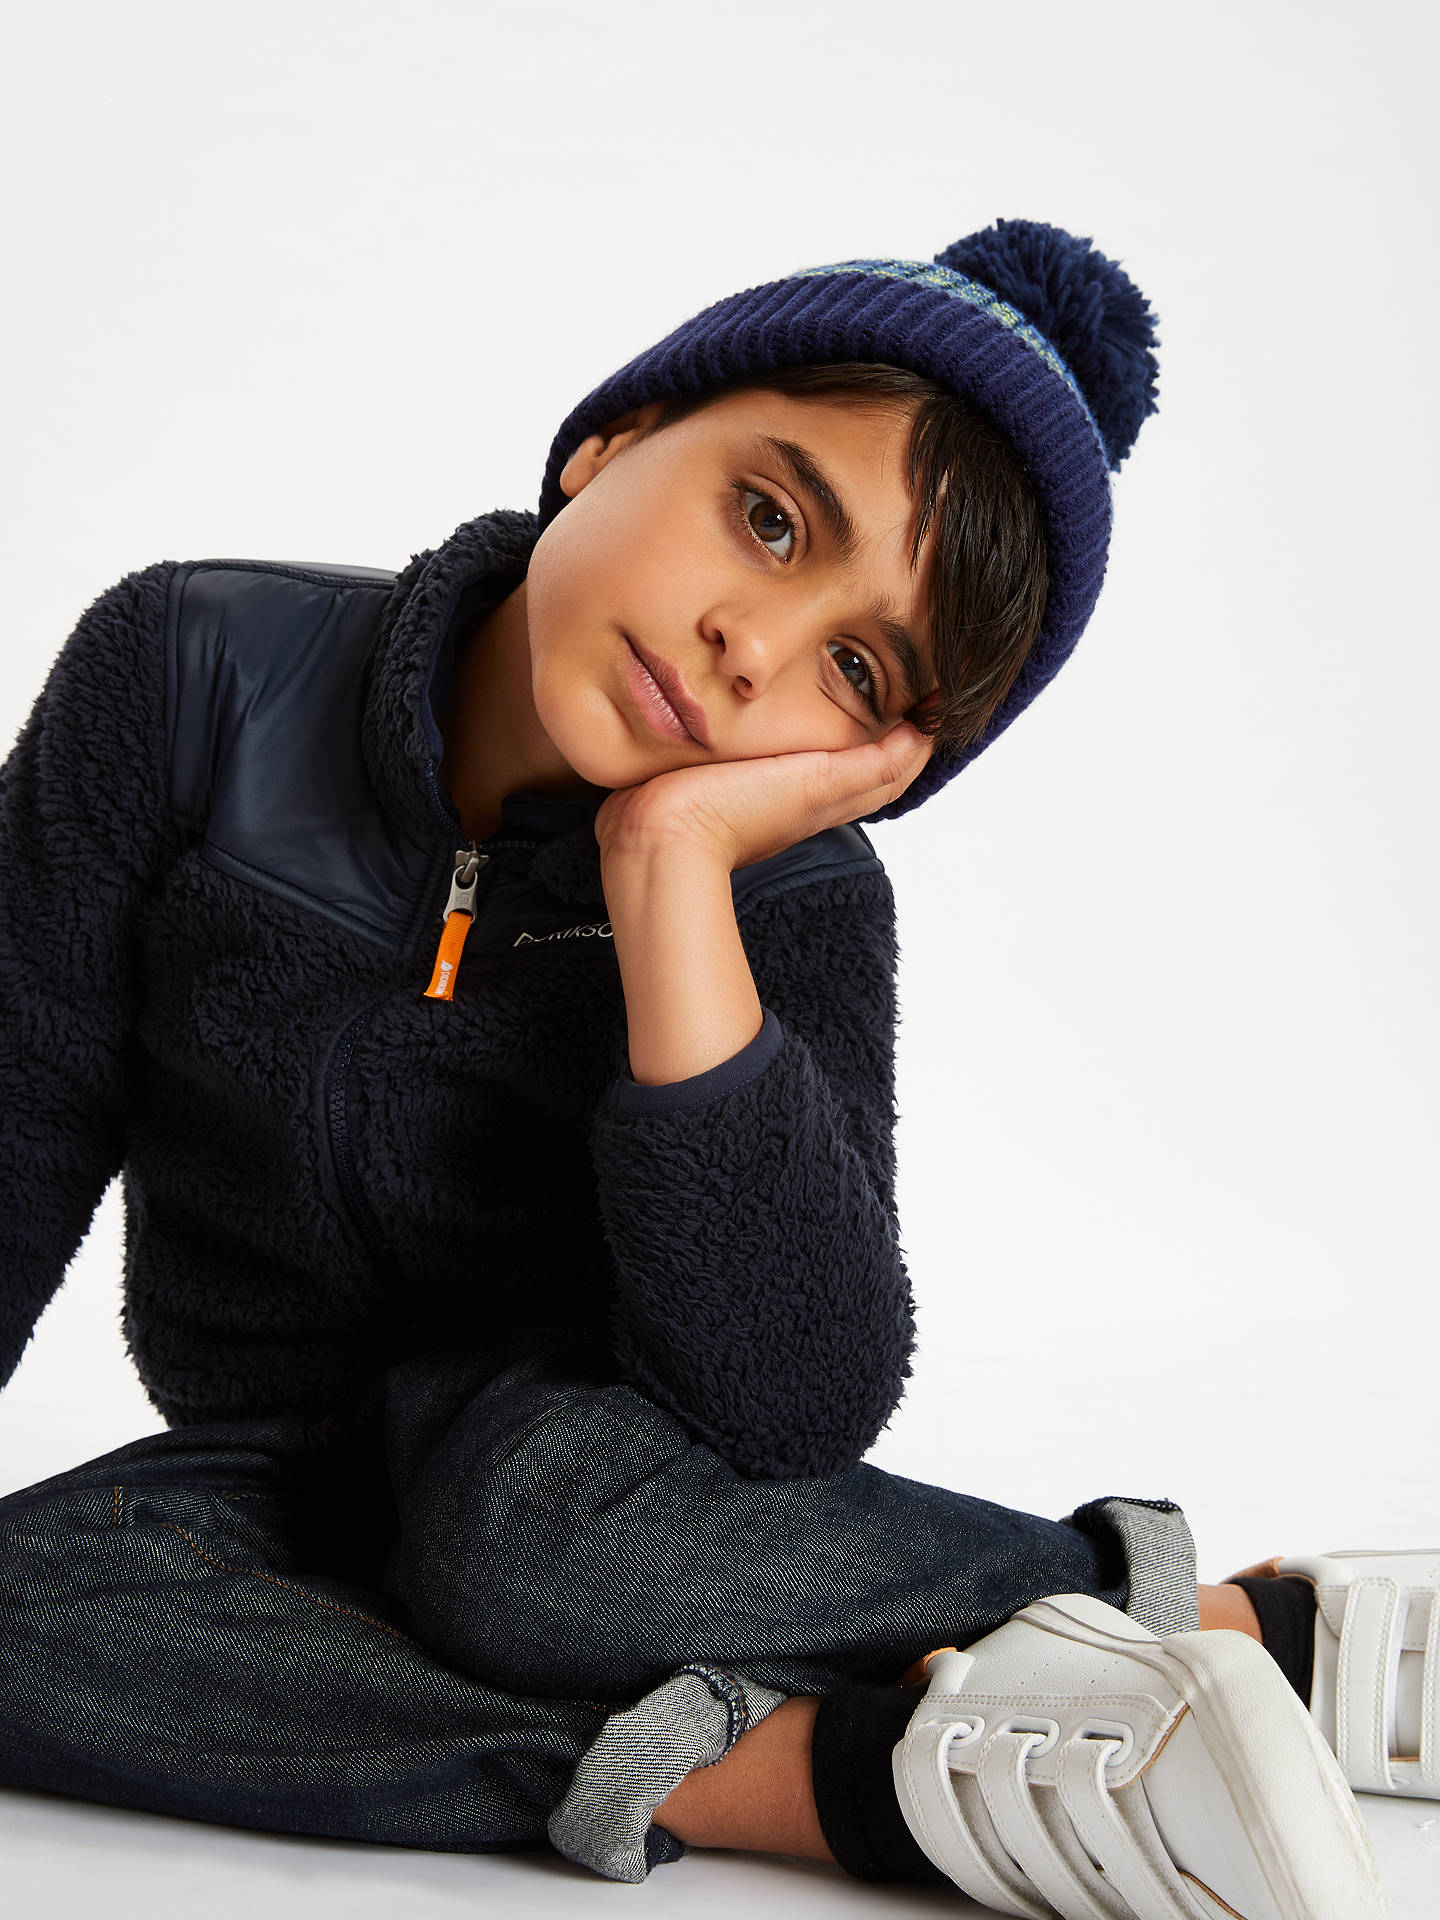 BuyJohn Lewis & Partners Children's Neon Colour Block Beanie Hat, Blue, 3-5 years Online at johnlewis.com